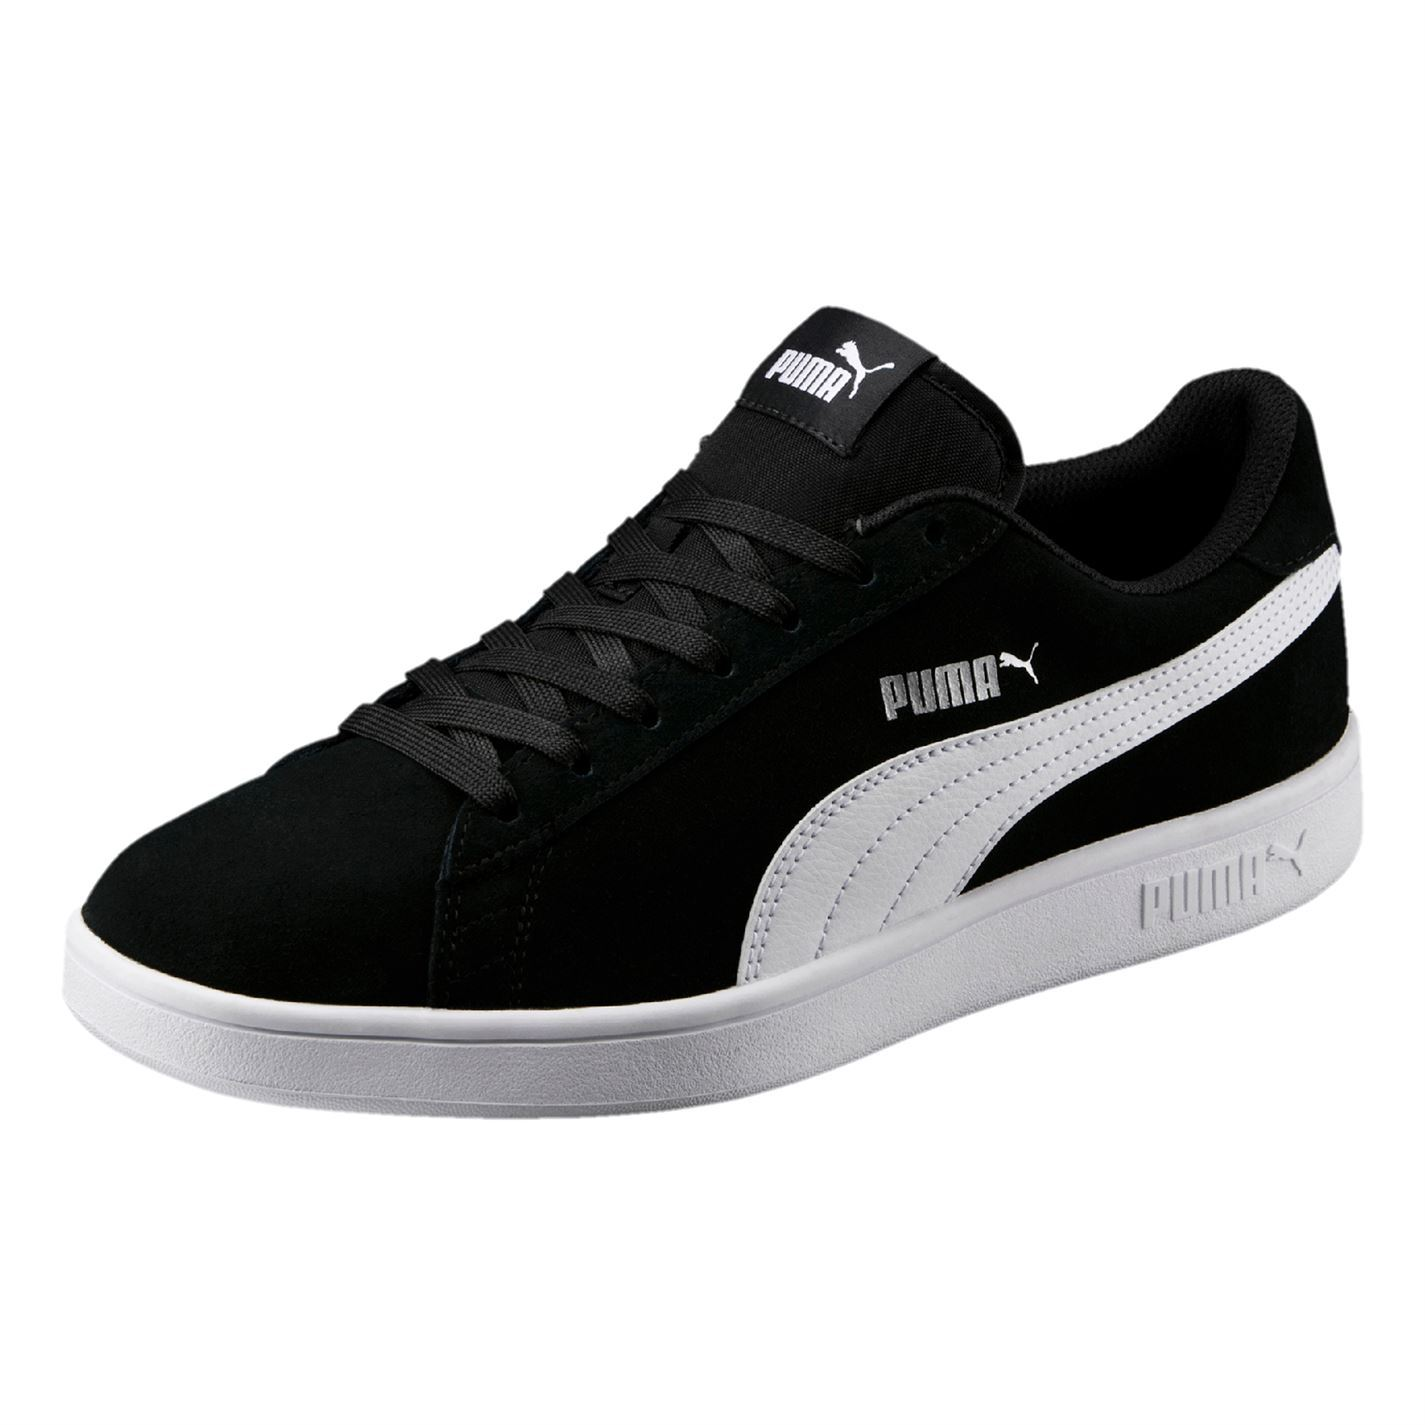 Puma-Smash-V2-Suede-Trainers-Mens-Shoes-Sneakers-Athleisure-Footwear thumbnail 4